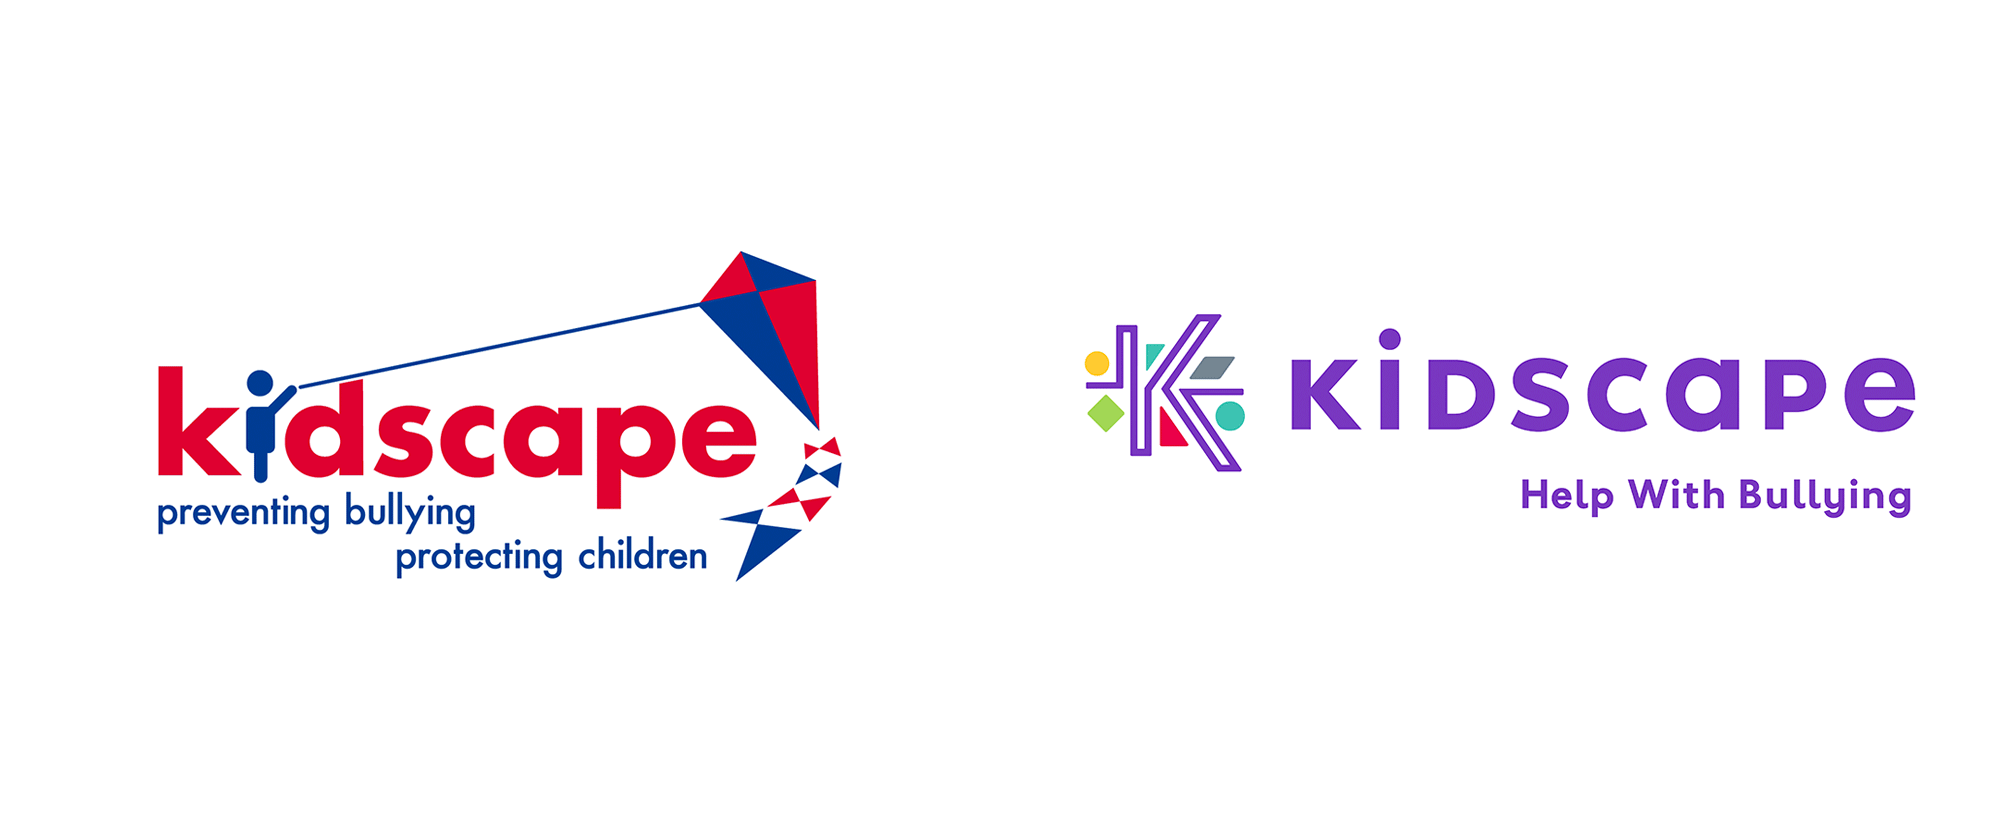 New Logo and Identity for Kidscape by Chromatic Brands